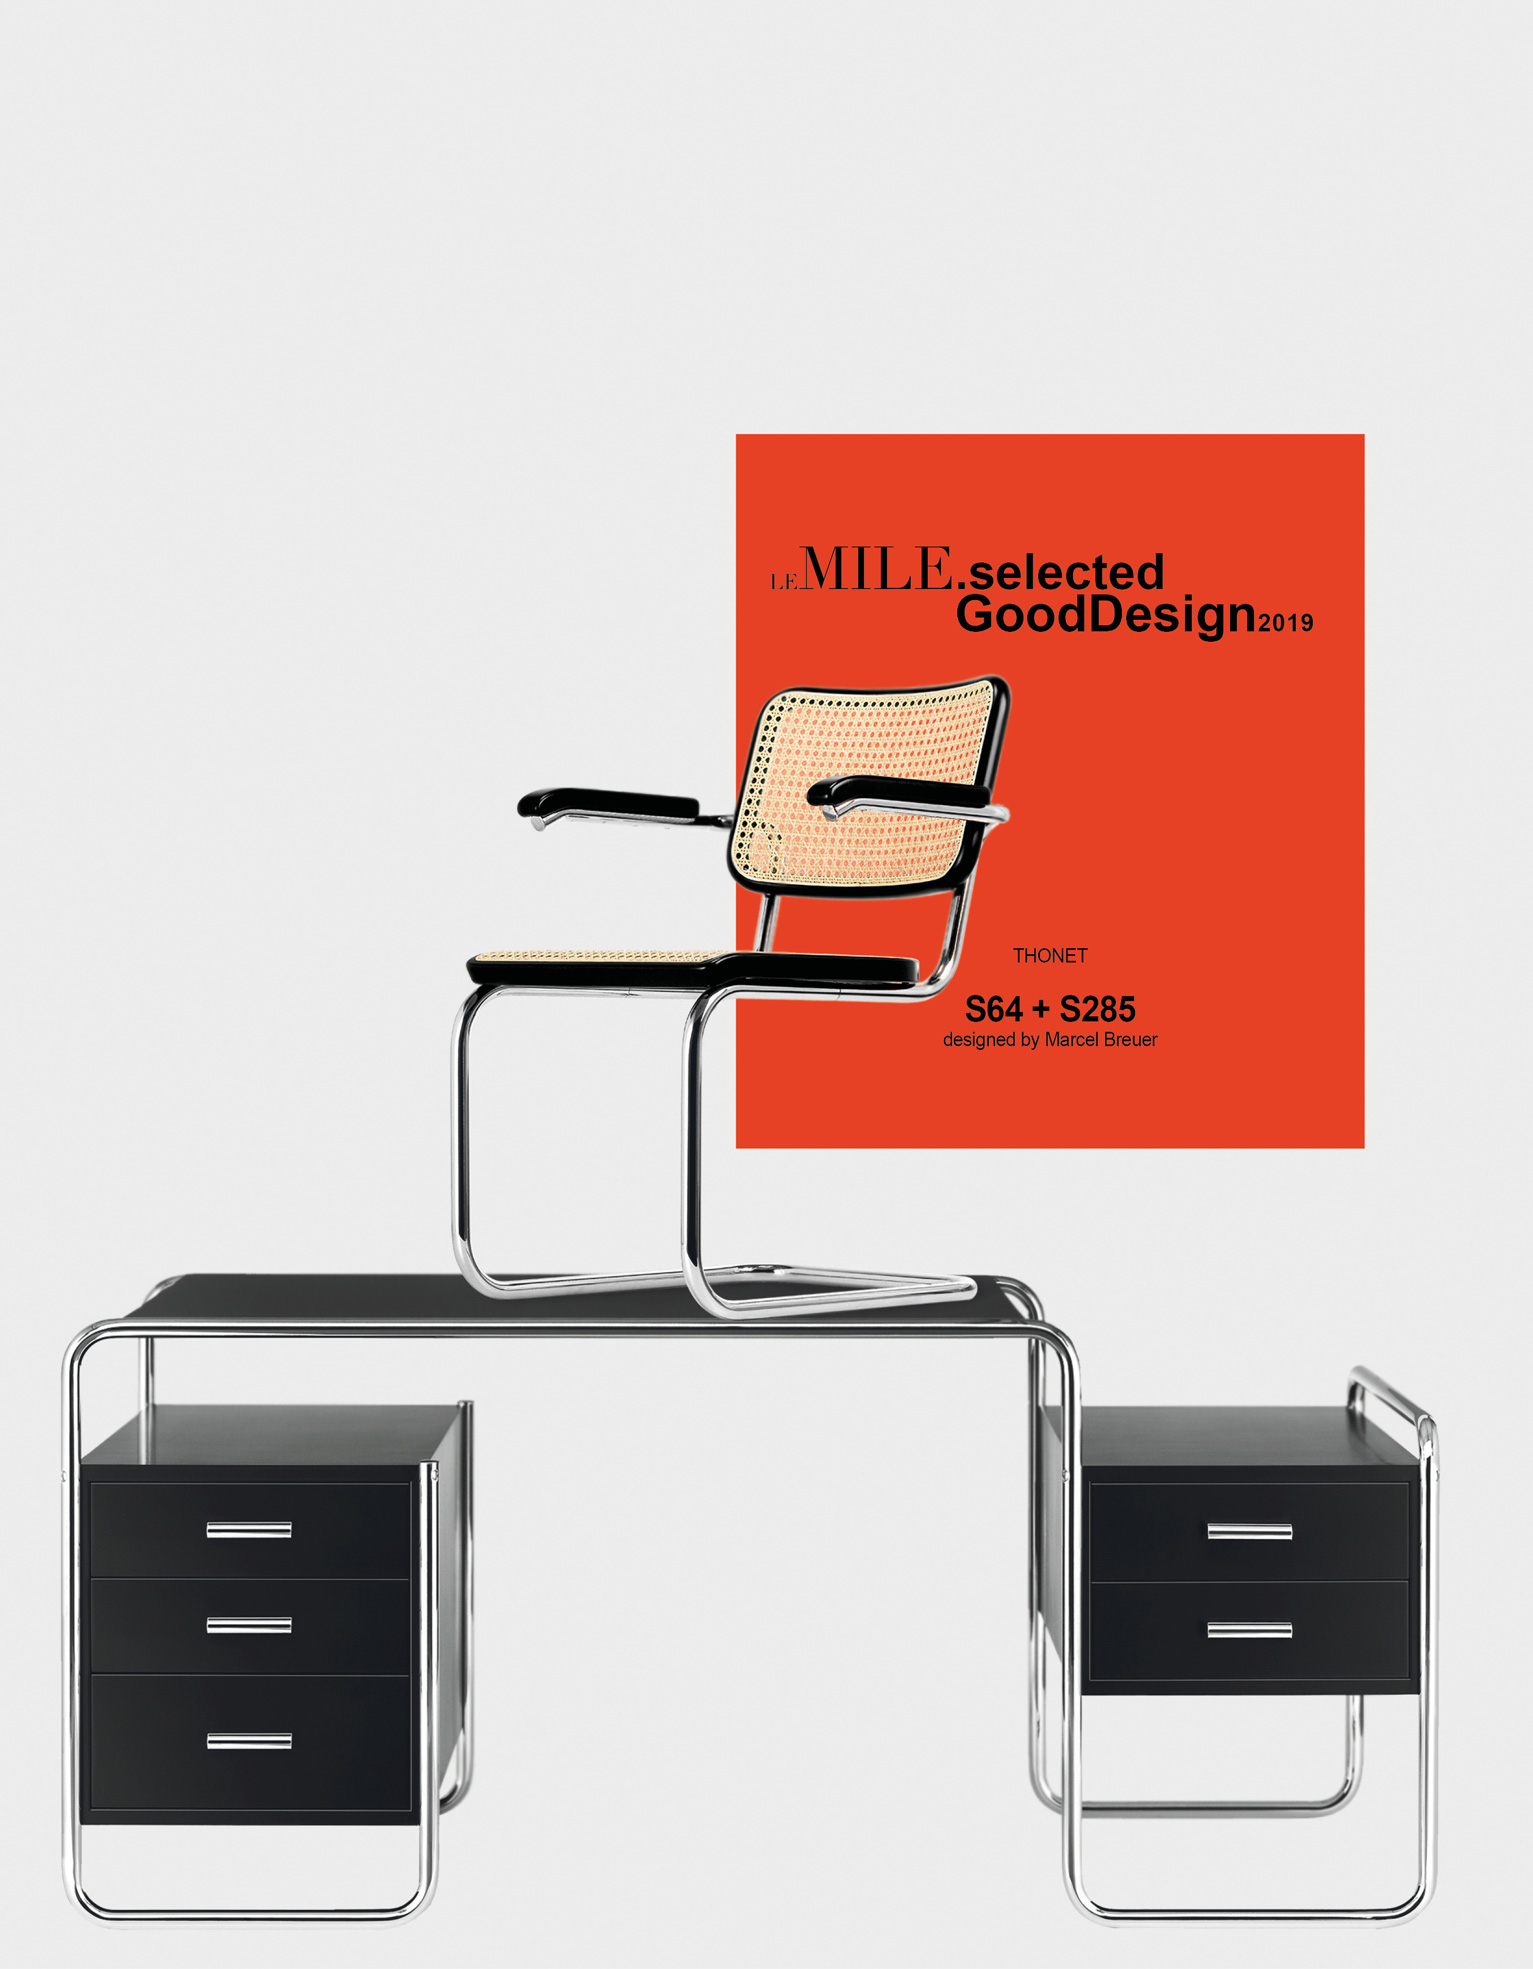 THONET   top_ S 64 Cantilever Chair - buttom_ Tubular Steel Desk S 285, both designed by Marcel Breuer (Originally designed in 1935)